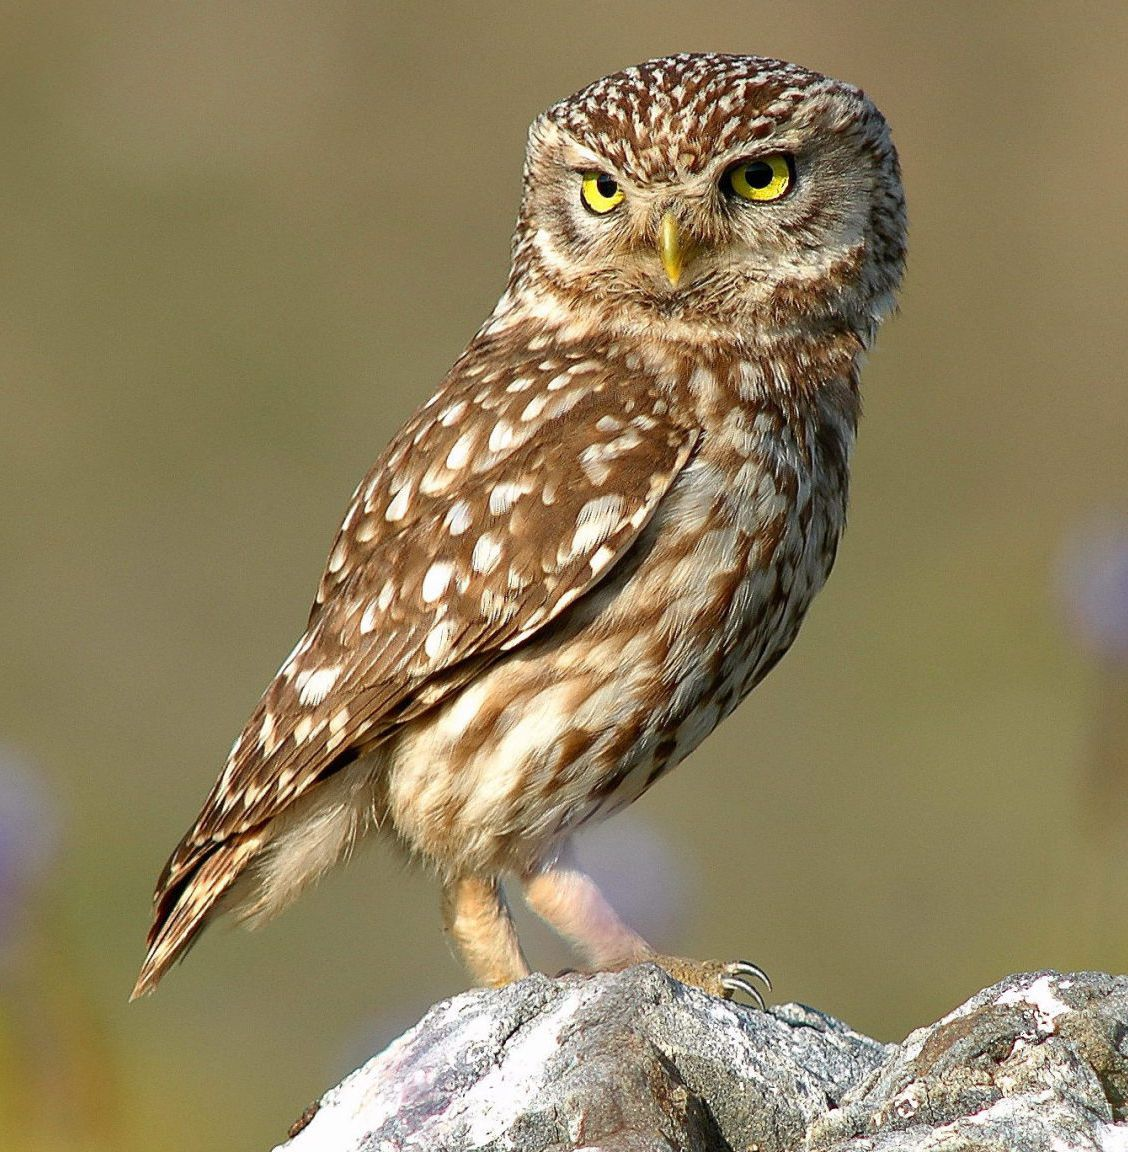 Owls are solitary creatures